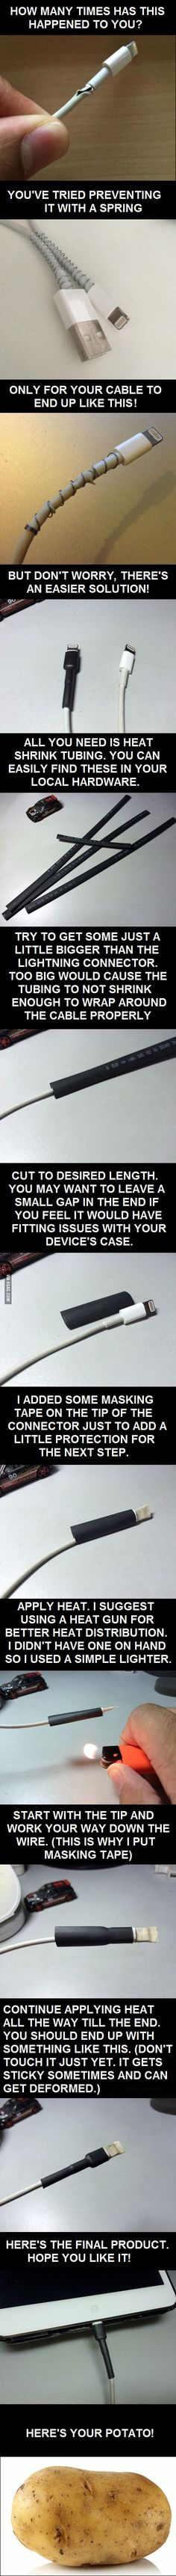 For Those Tired of Their Cables Breaking